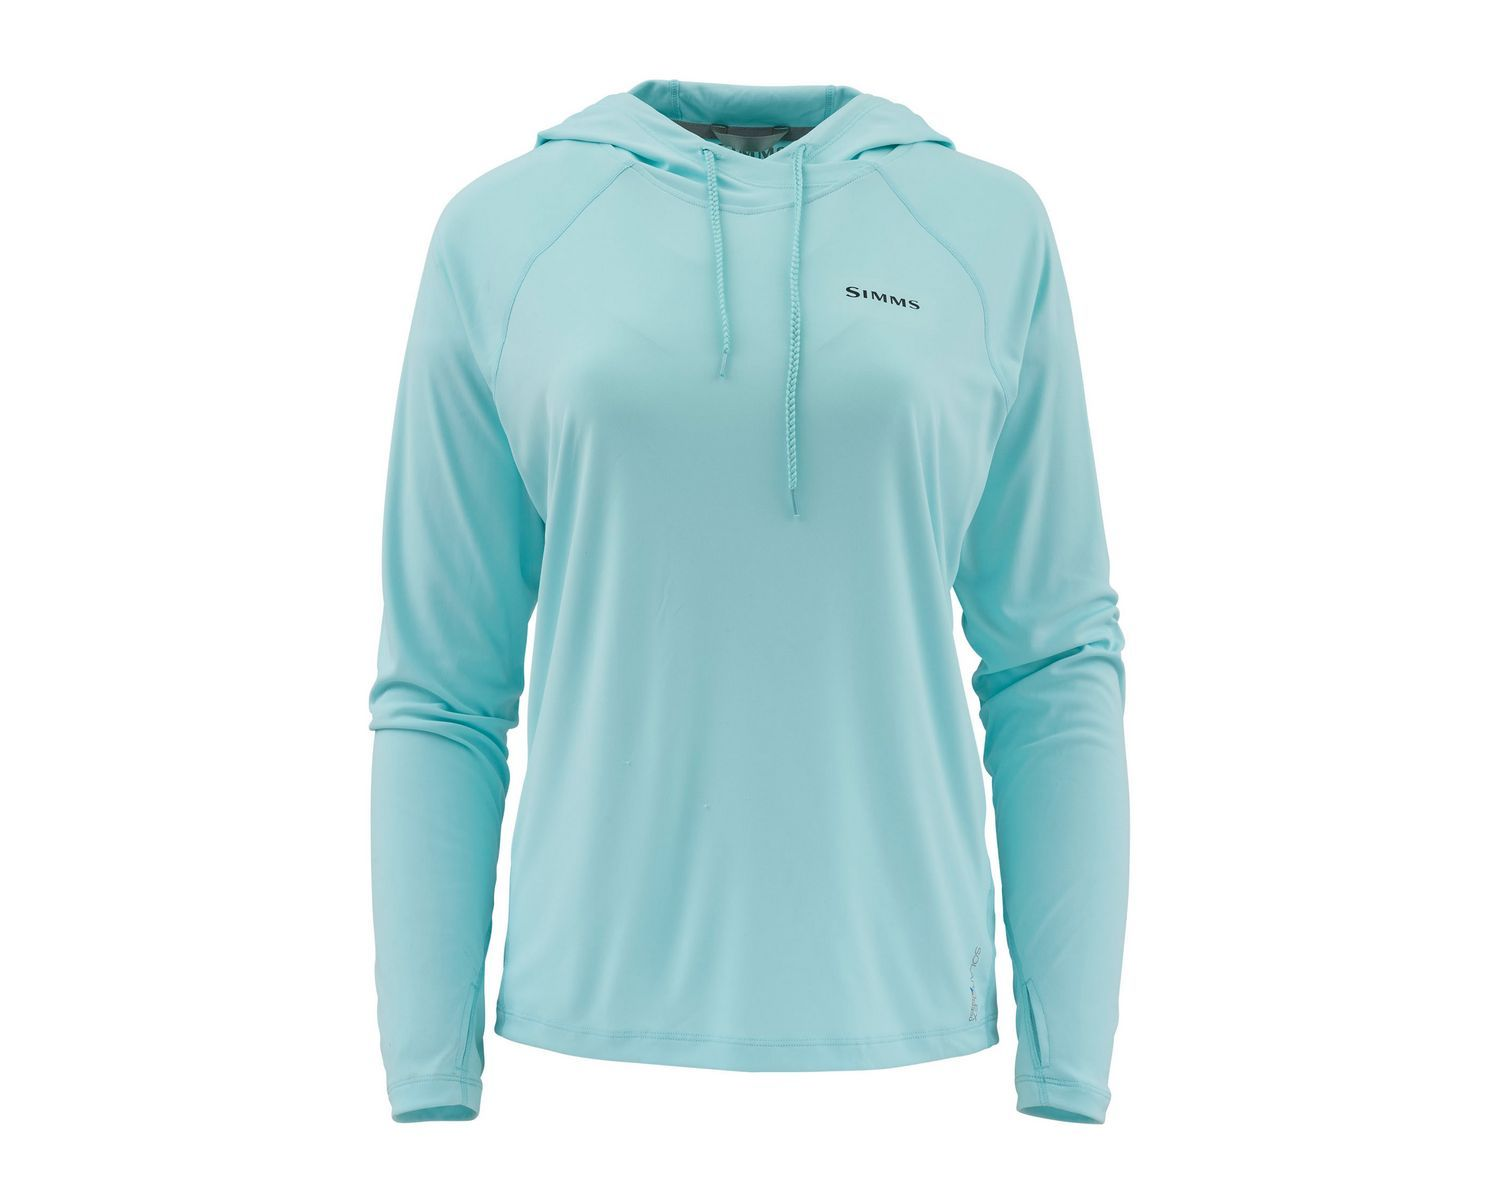 Simms Womens SolarFlex Hoody - Sea Breeze